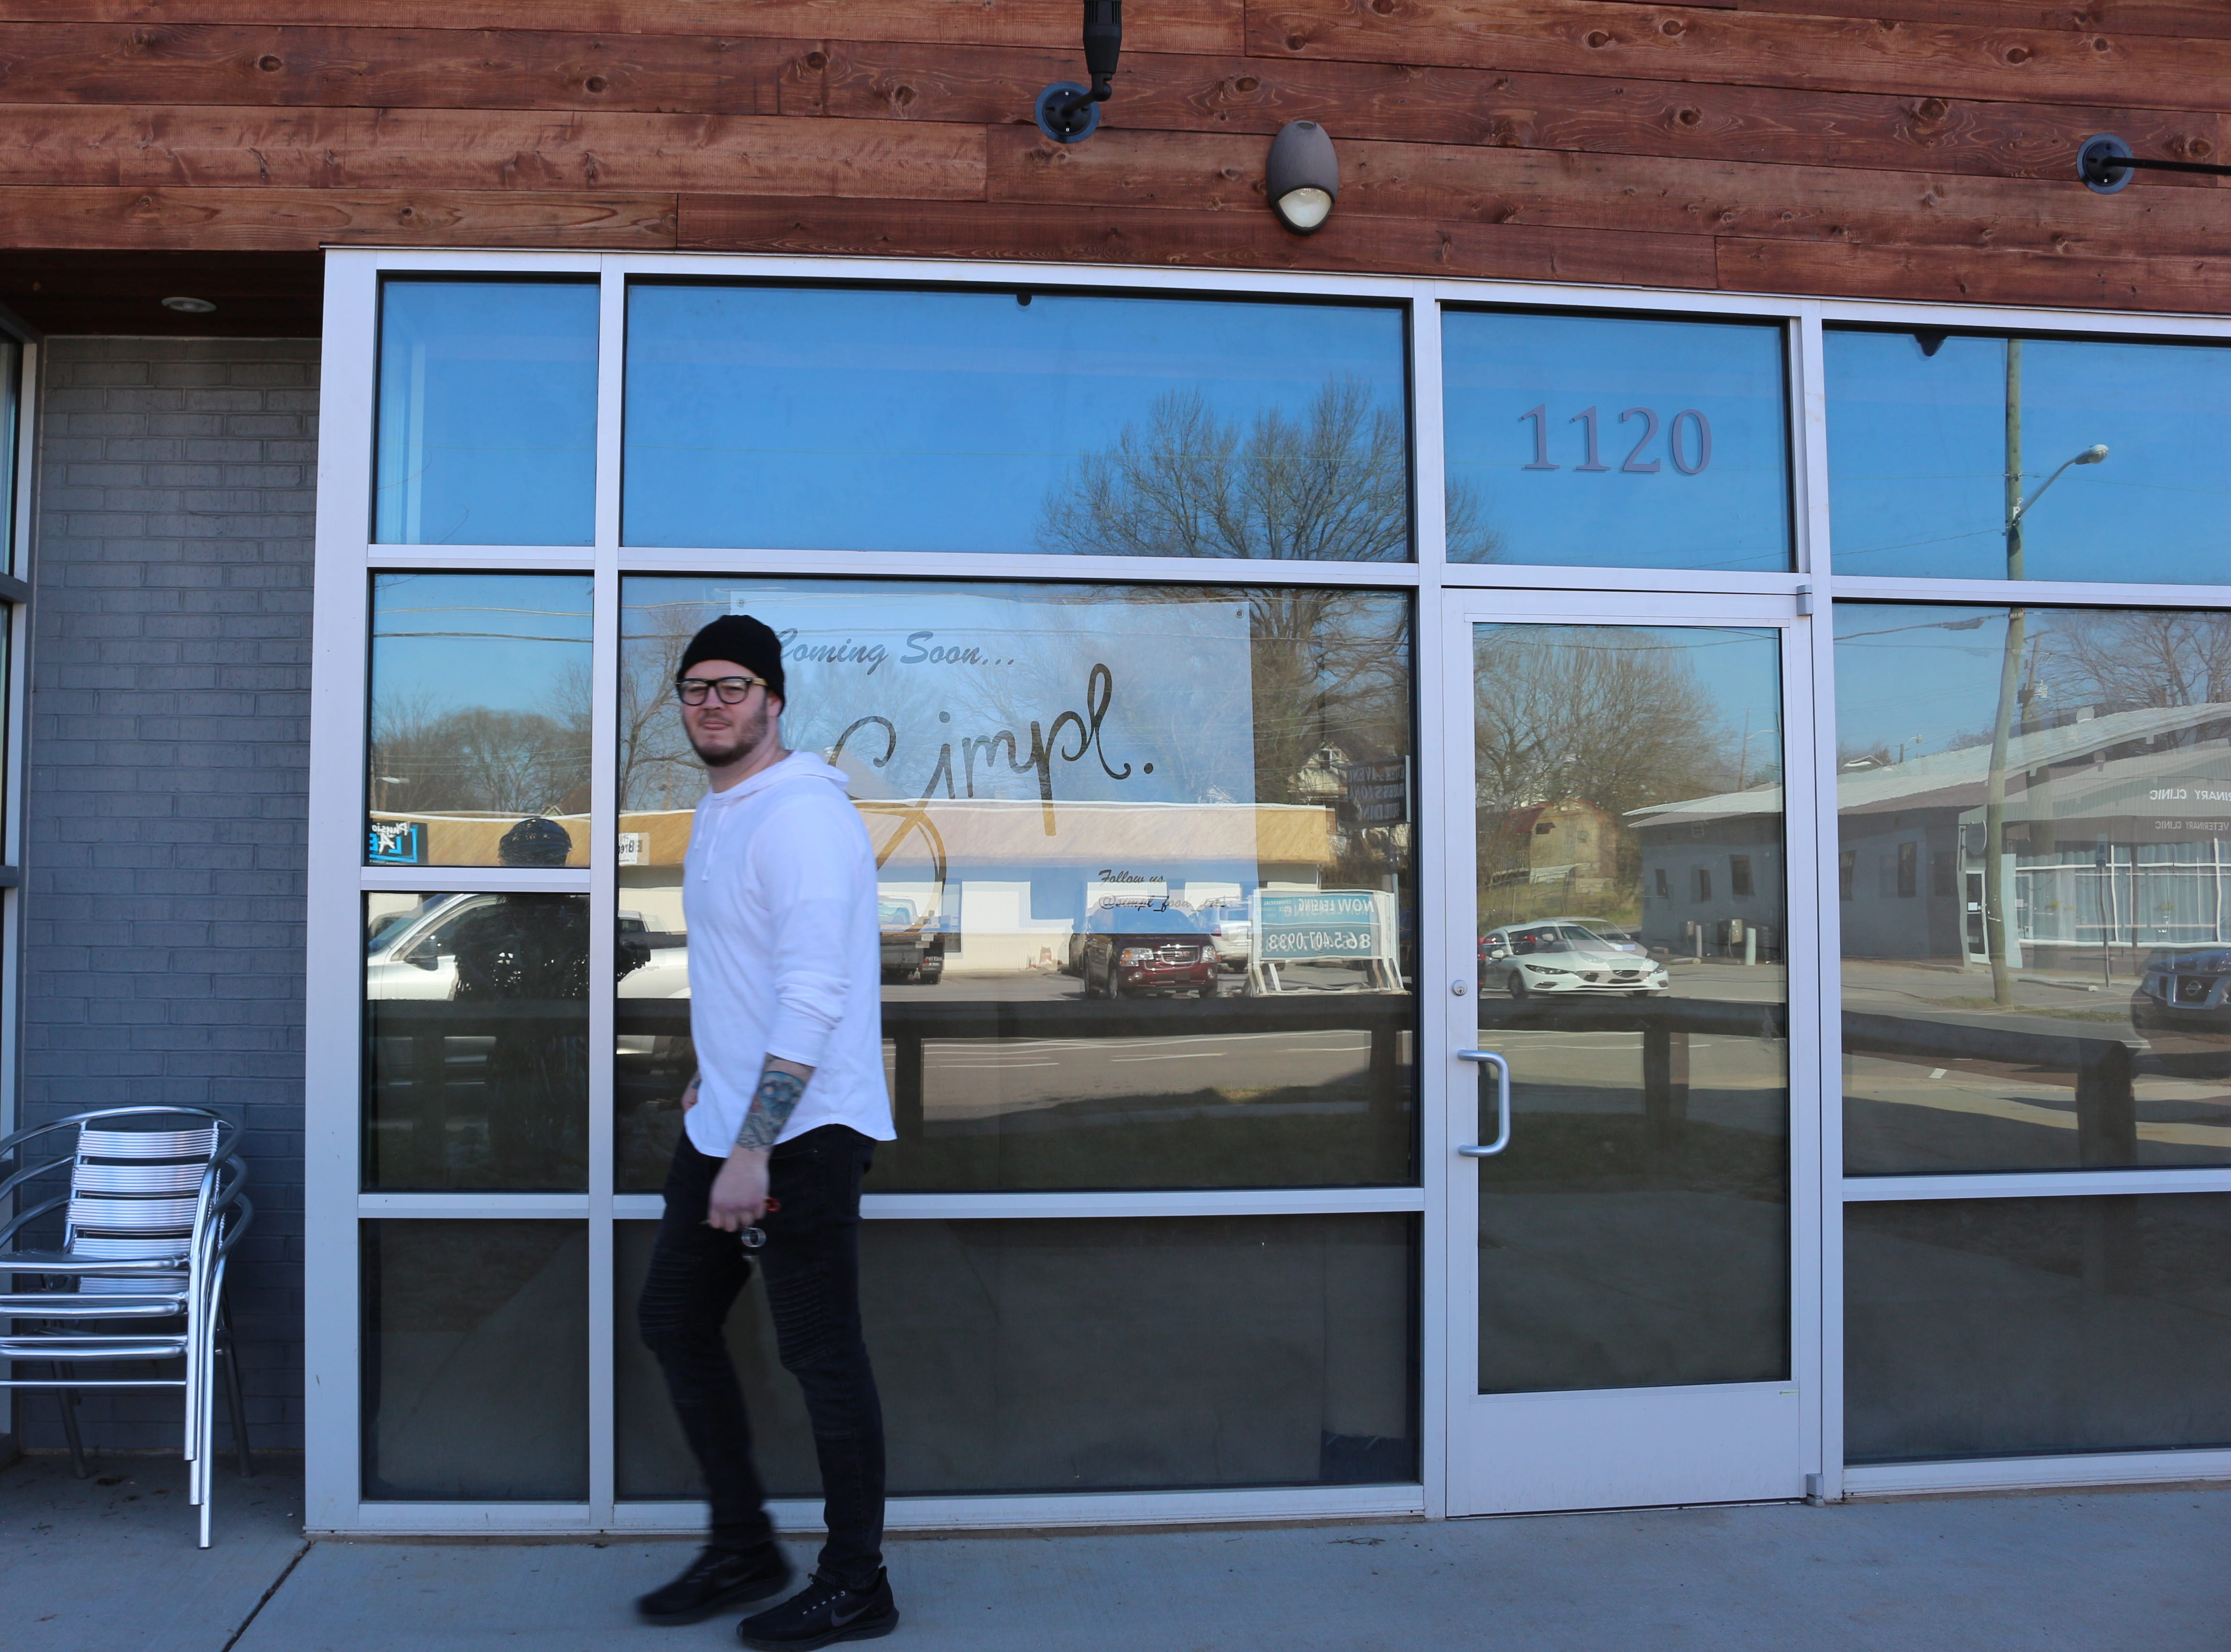 In spring 2019, the young chef is set to open his first restaurant, Simpl, in the space recently vacated by Three Bears Coffee on Sevier Avenue.